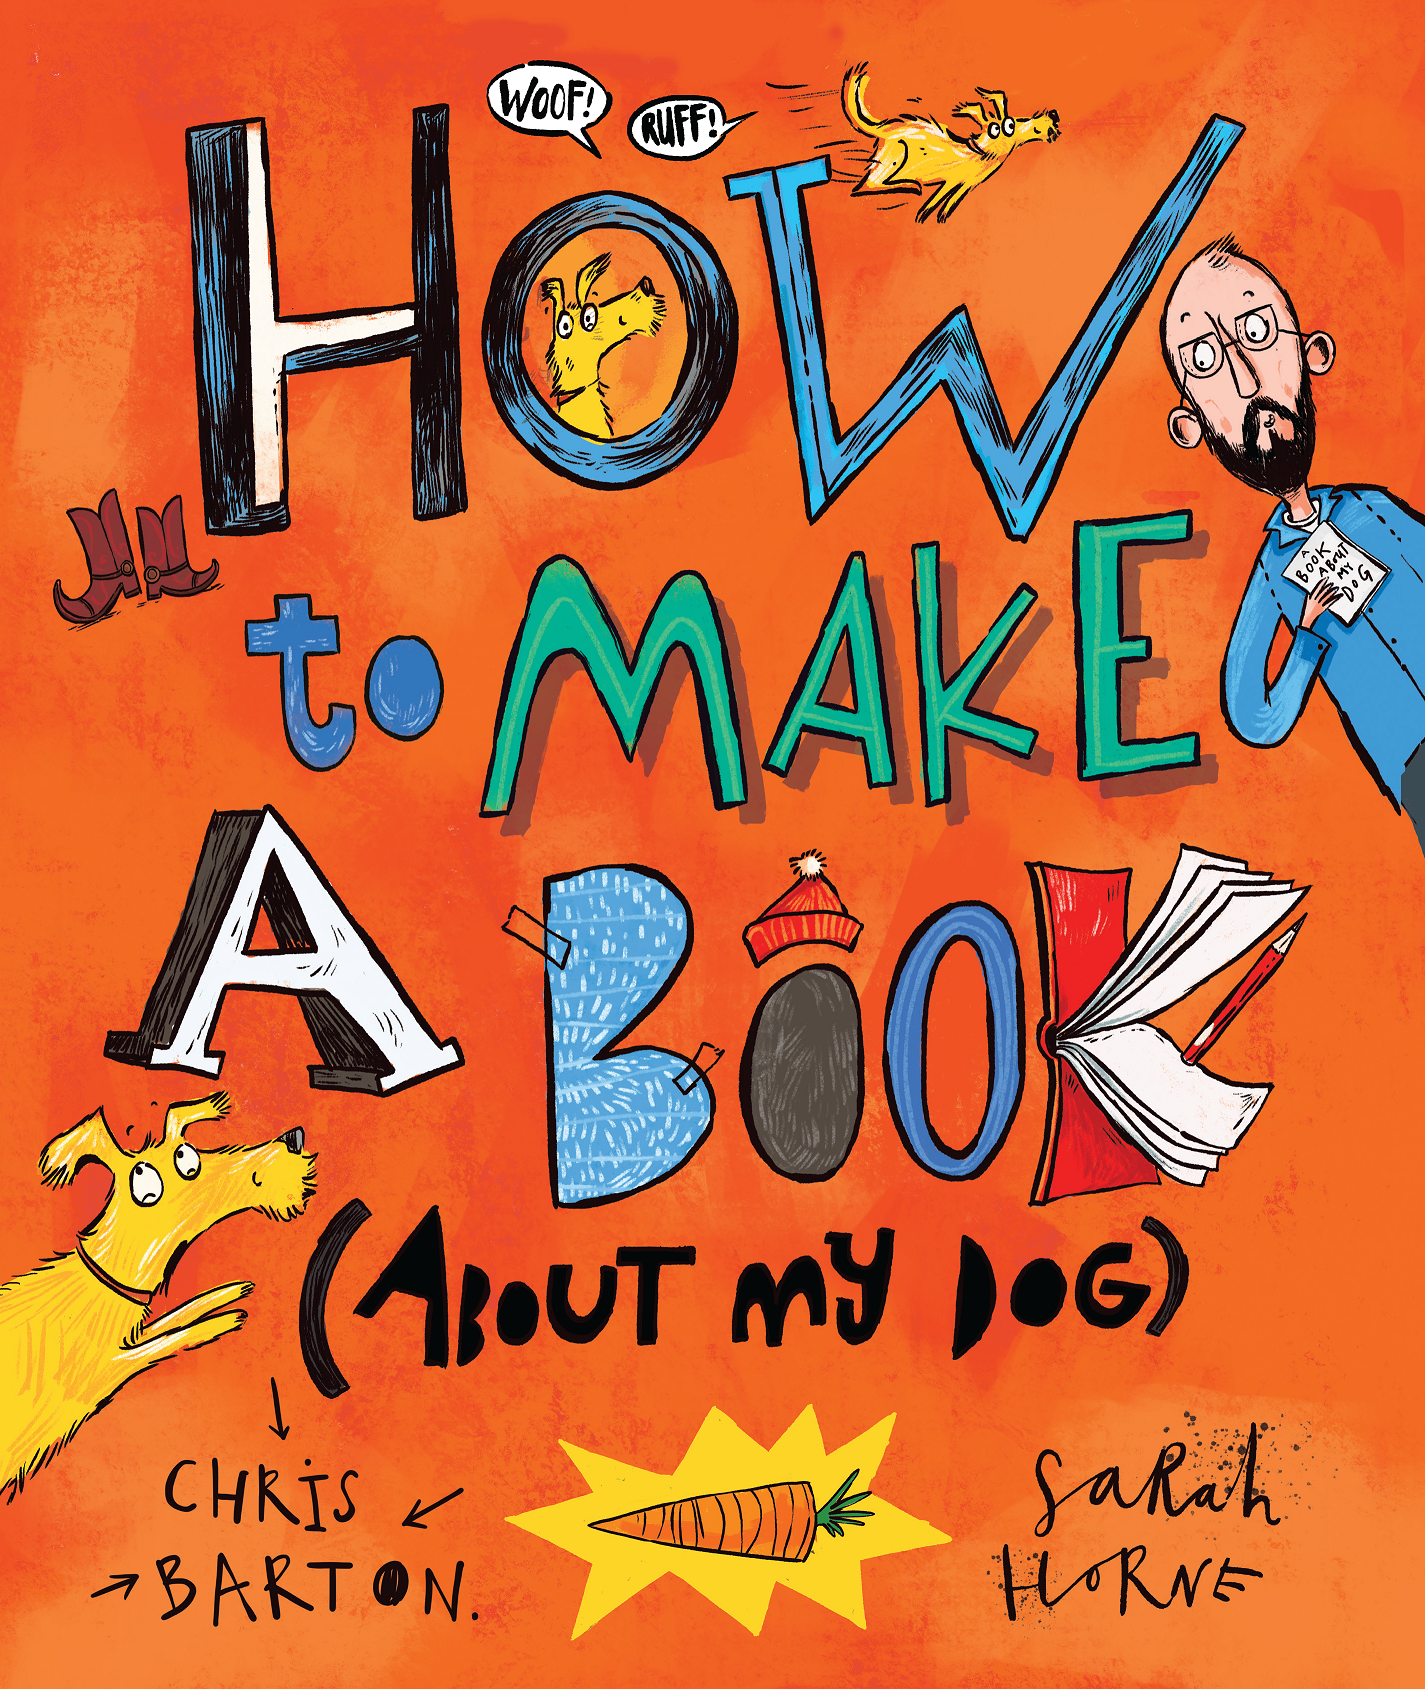 How to watch, read, rate, review & pre-order How to Make a Book (About My Dog)